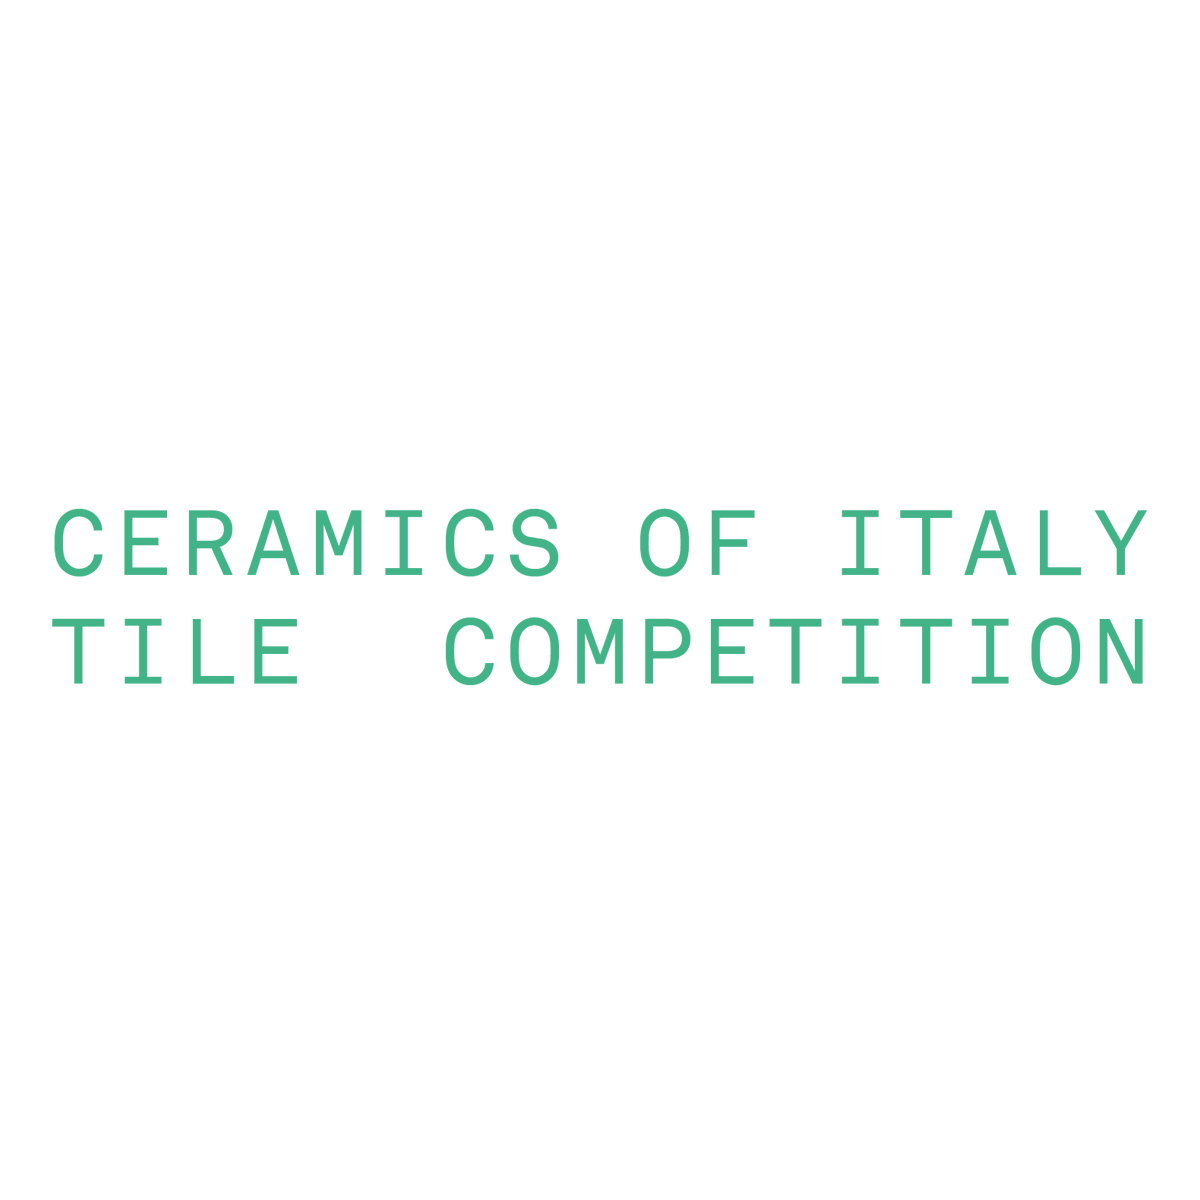 Ceramics of Italy Launches 2020 Tile Competition